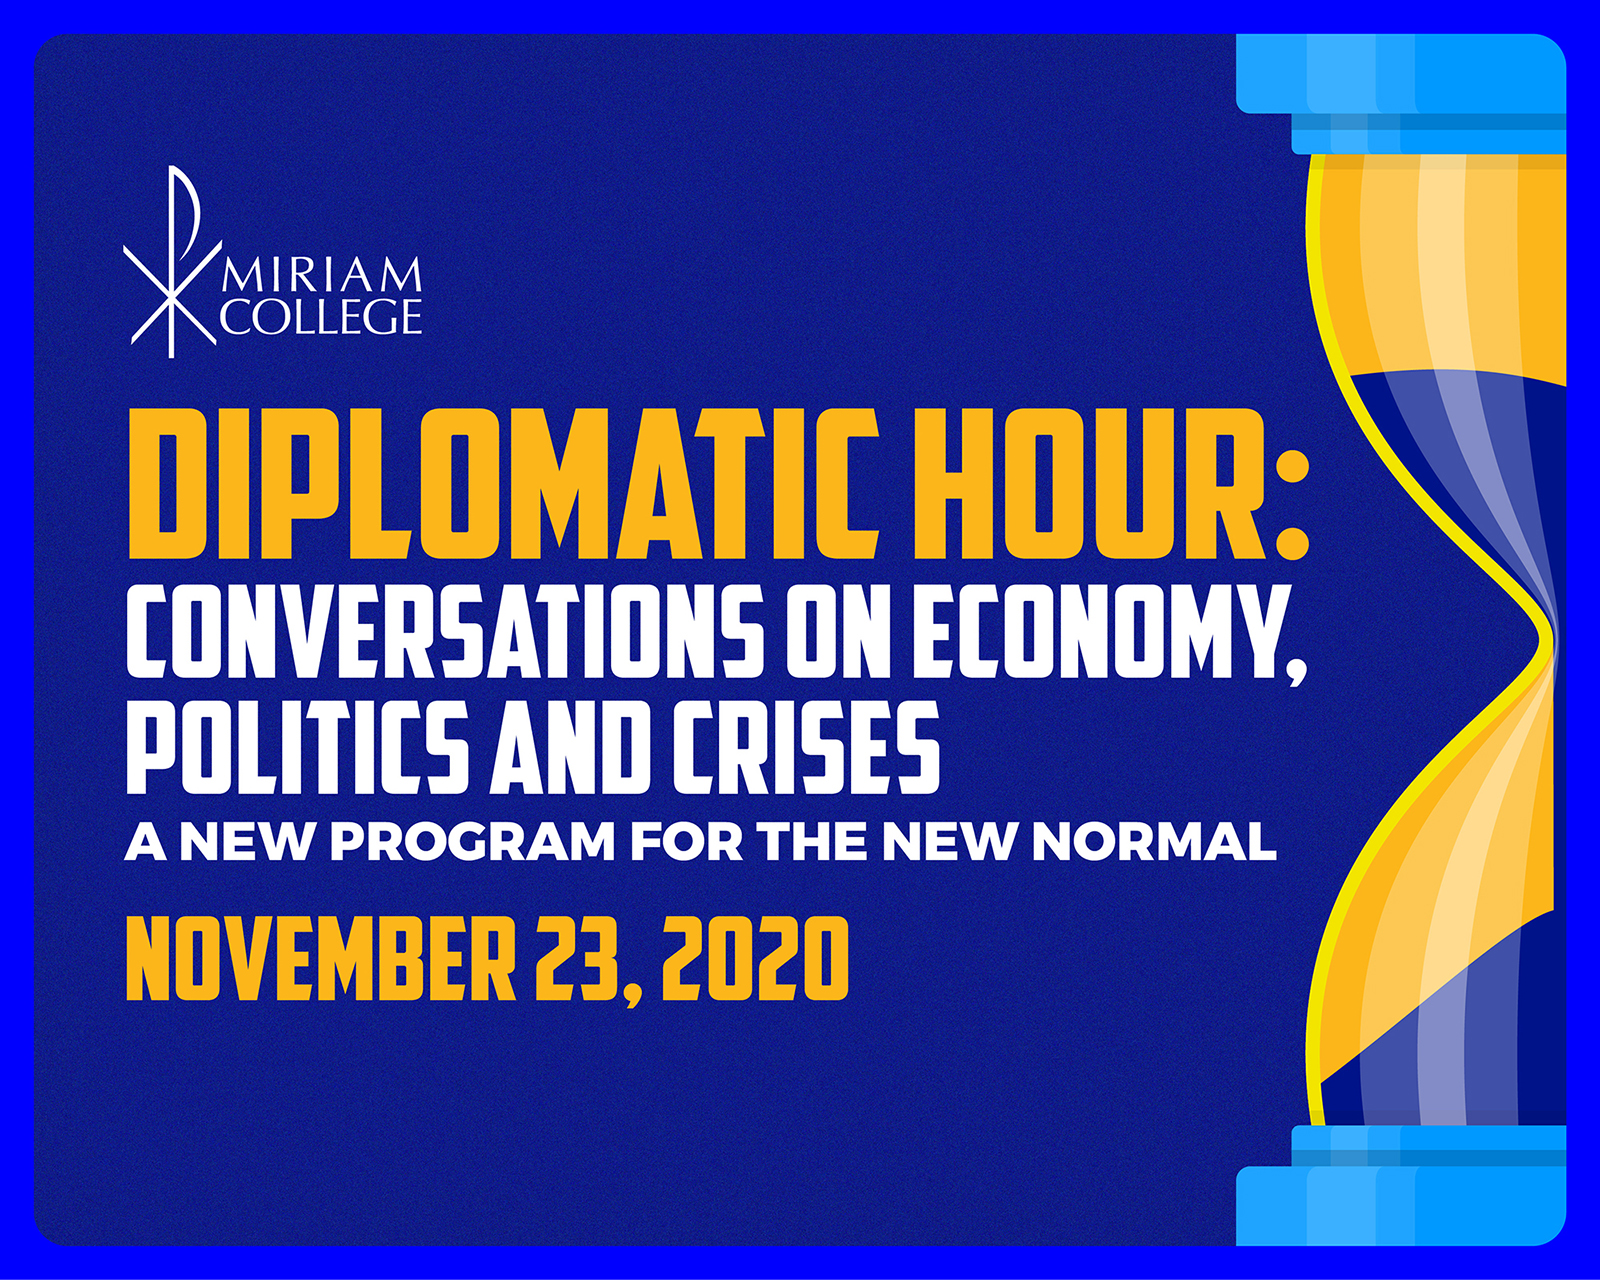 DIPLOMATIC HOUR:  Conversations on Economy, Politics and Crises